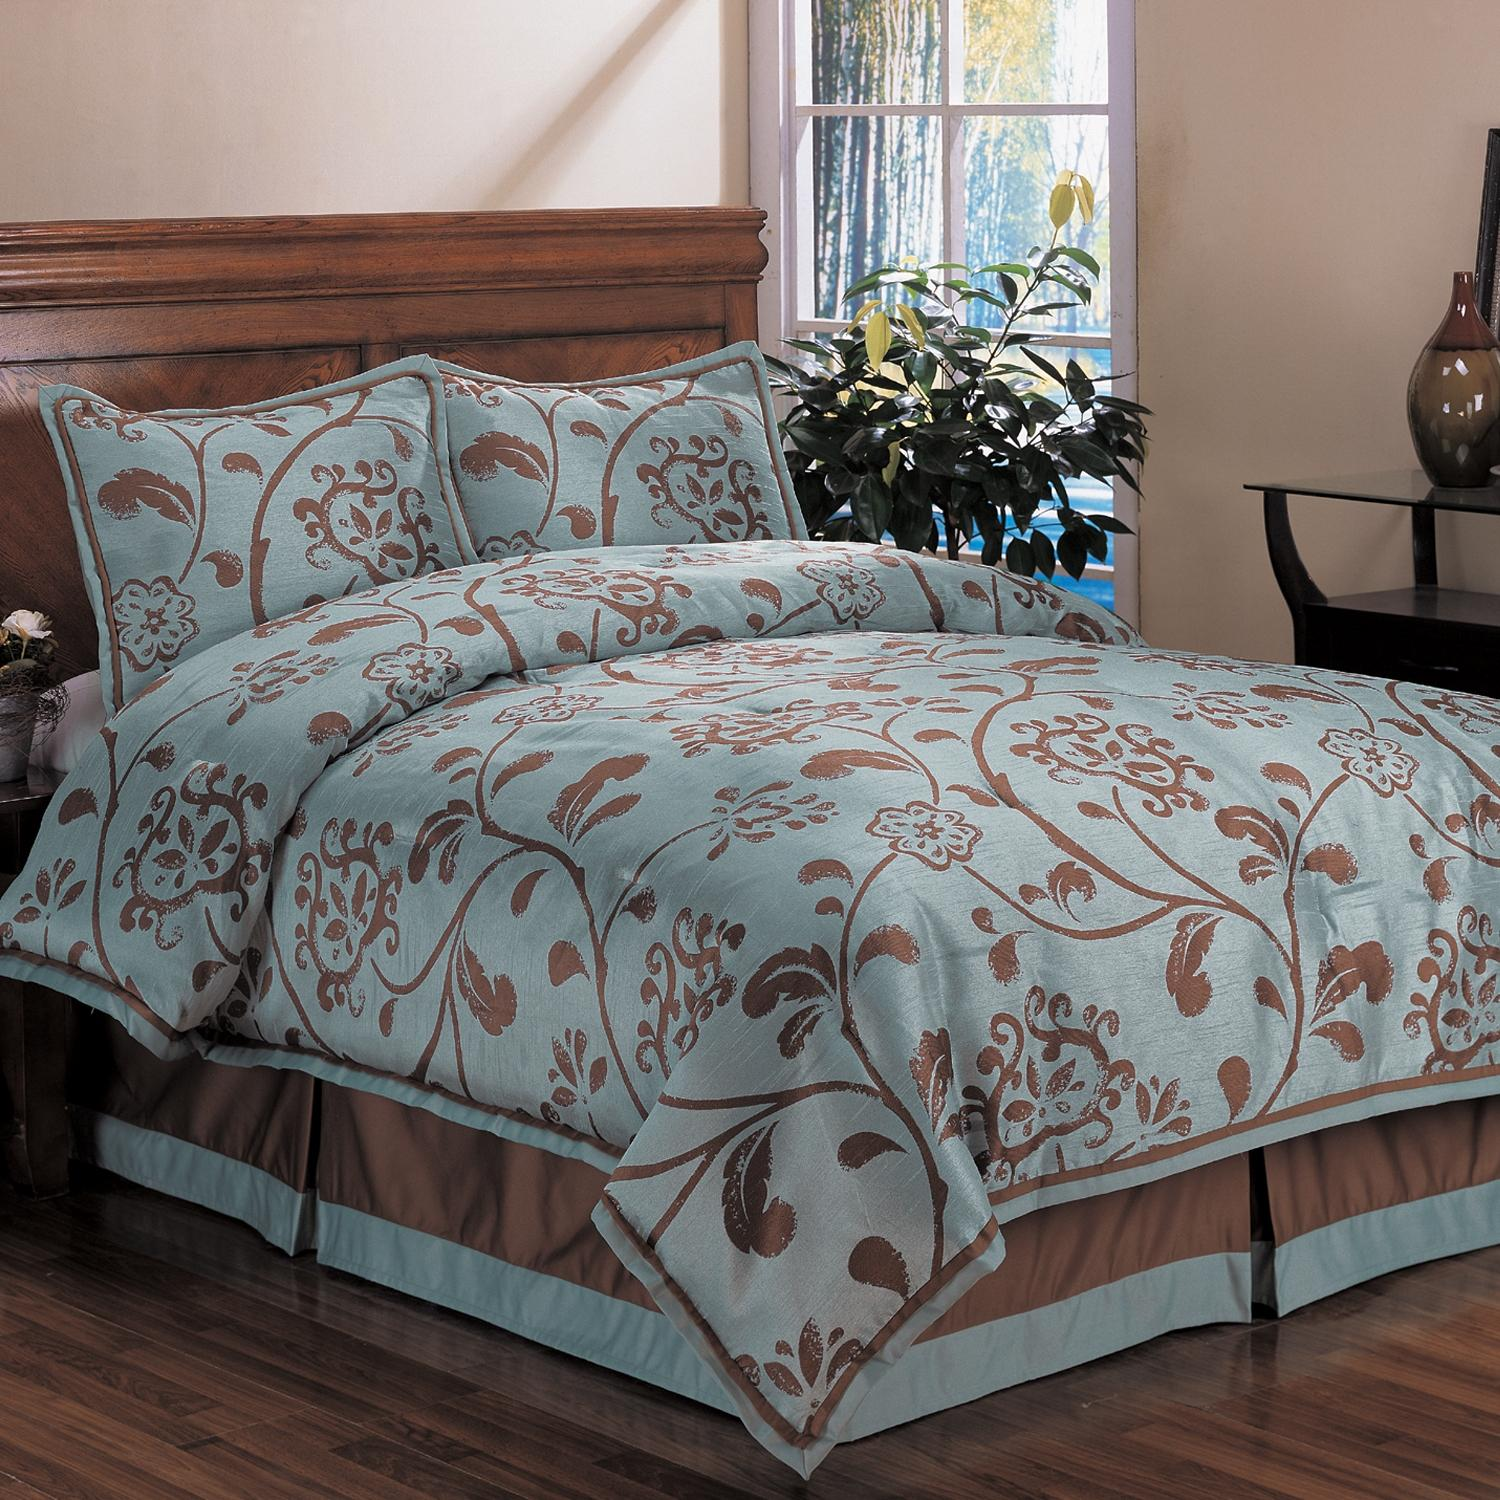 King Quilt Size Bella Floral King Size 4 Piece Comforter Set 13191621